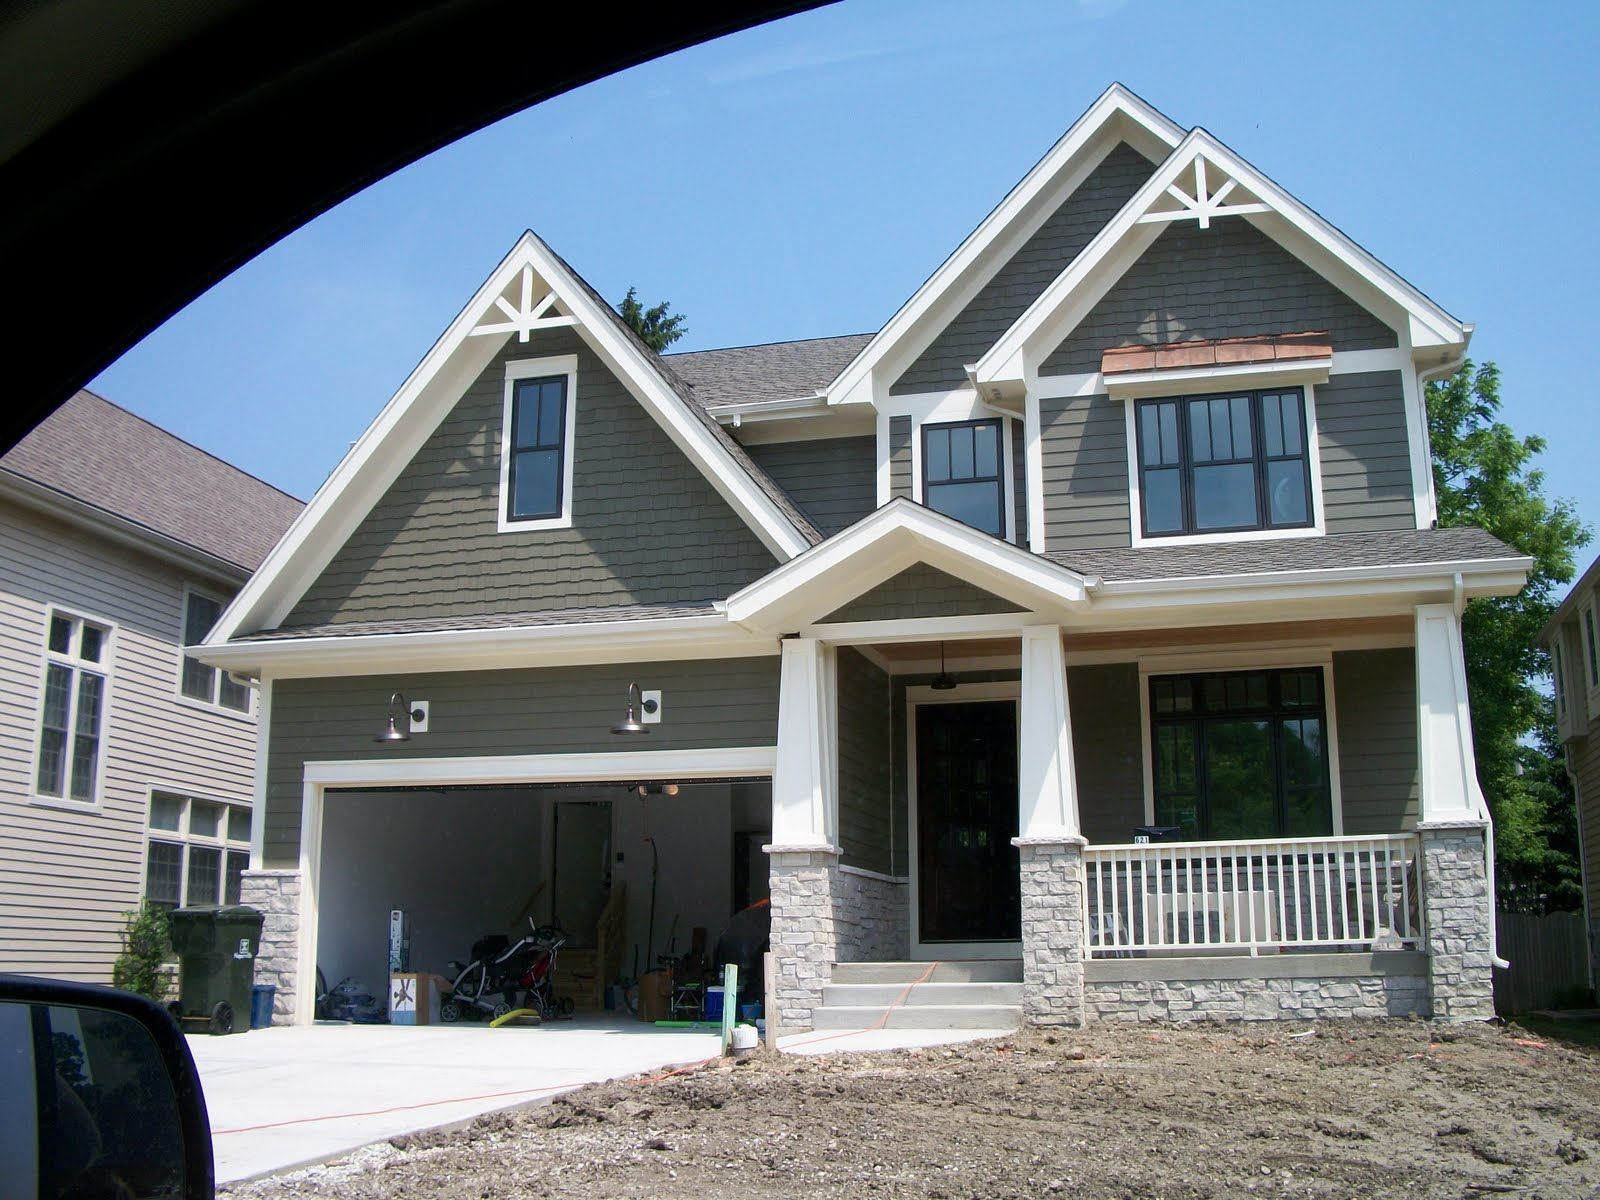 Best Paint Color For House Exterior Luxury Best Exterior Paints With Images Exterior Gray Paint Exterior Paint Colors For House House Paint Exterior